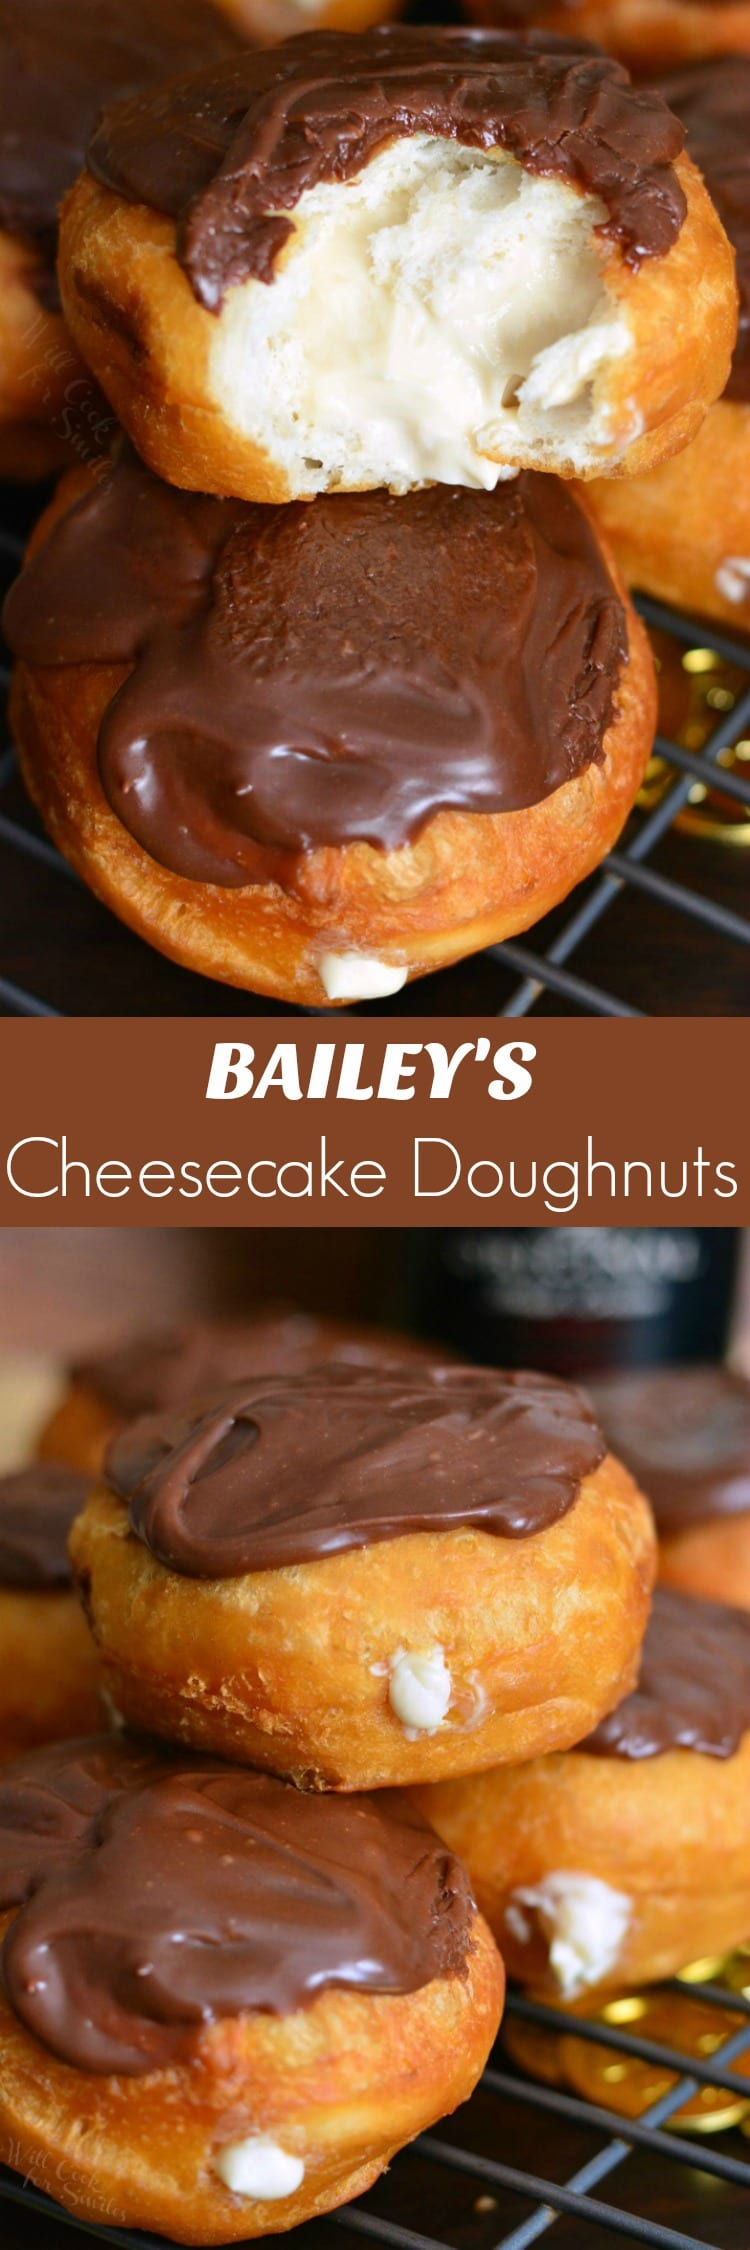 Bailey's Cheesecake Doughnuts. Easy doughnuts are filled with Bailey's cheesecake mixture and topped with Bailey's flavored milk chocolate ganache. #doughnuts #irishcream #baileys